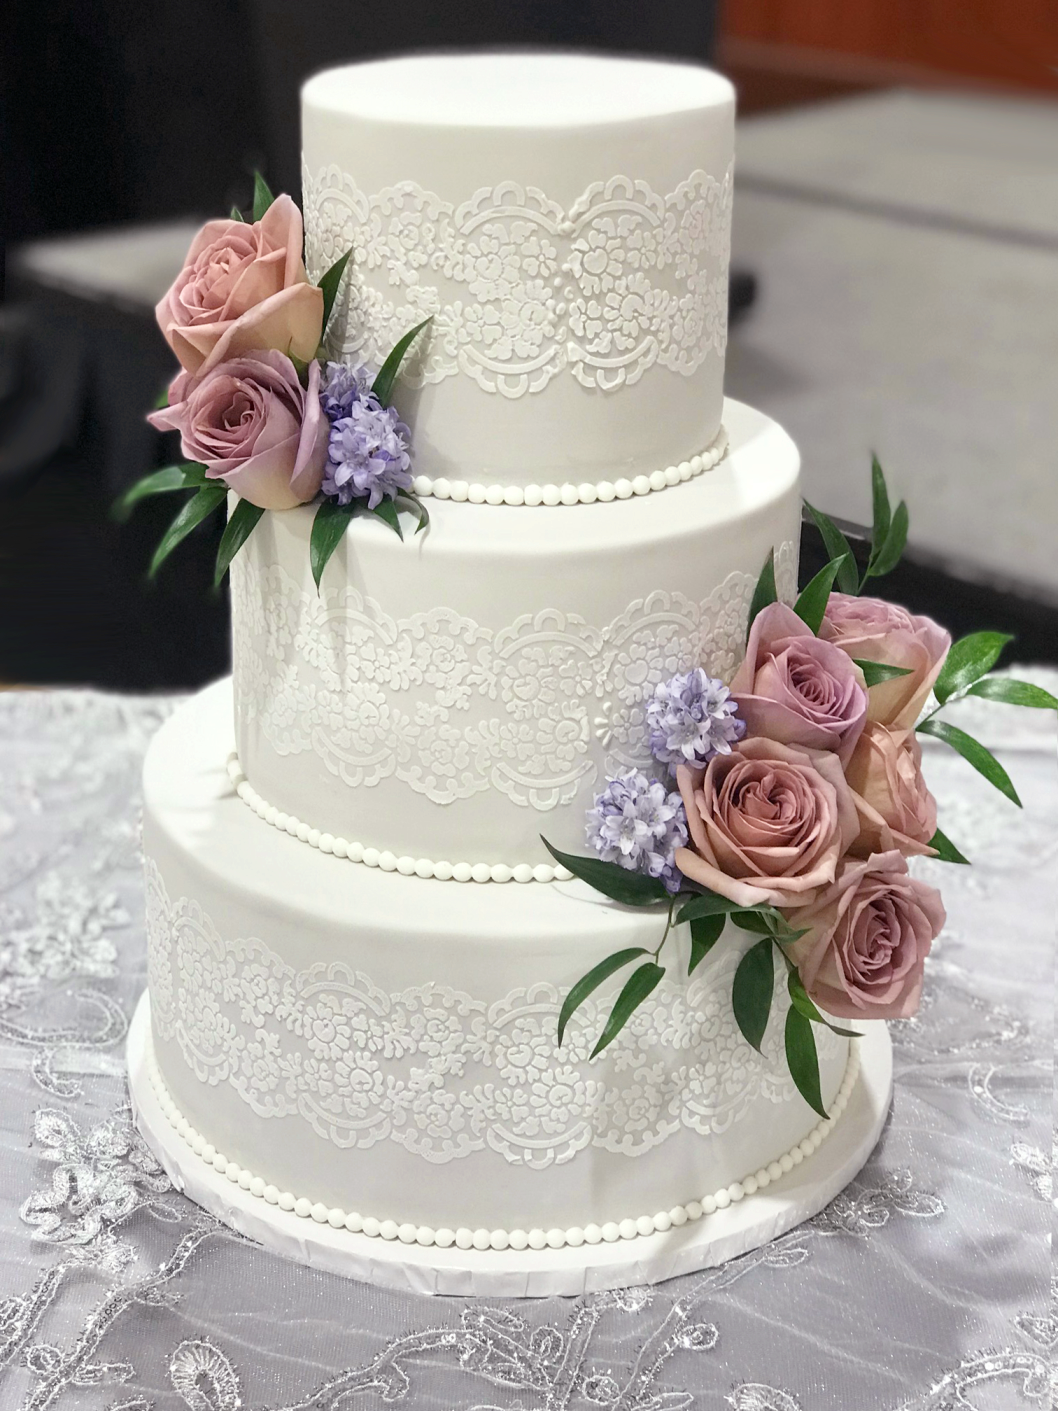 Whippt Desserts - wedding cake May 20182